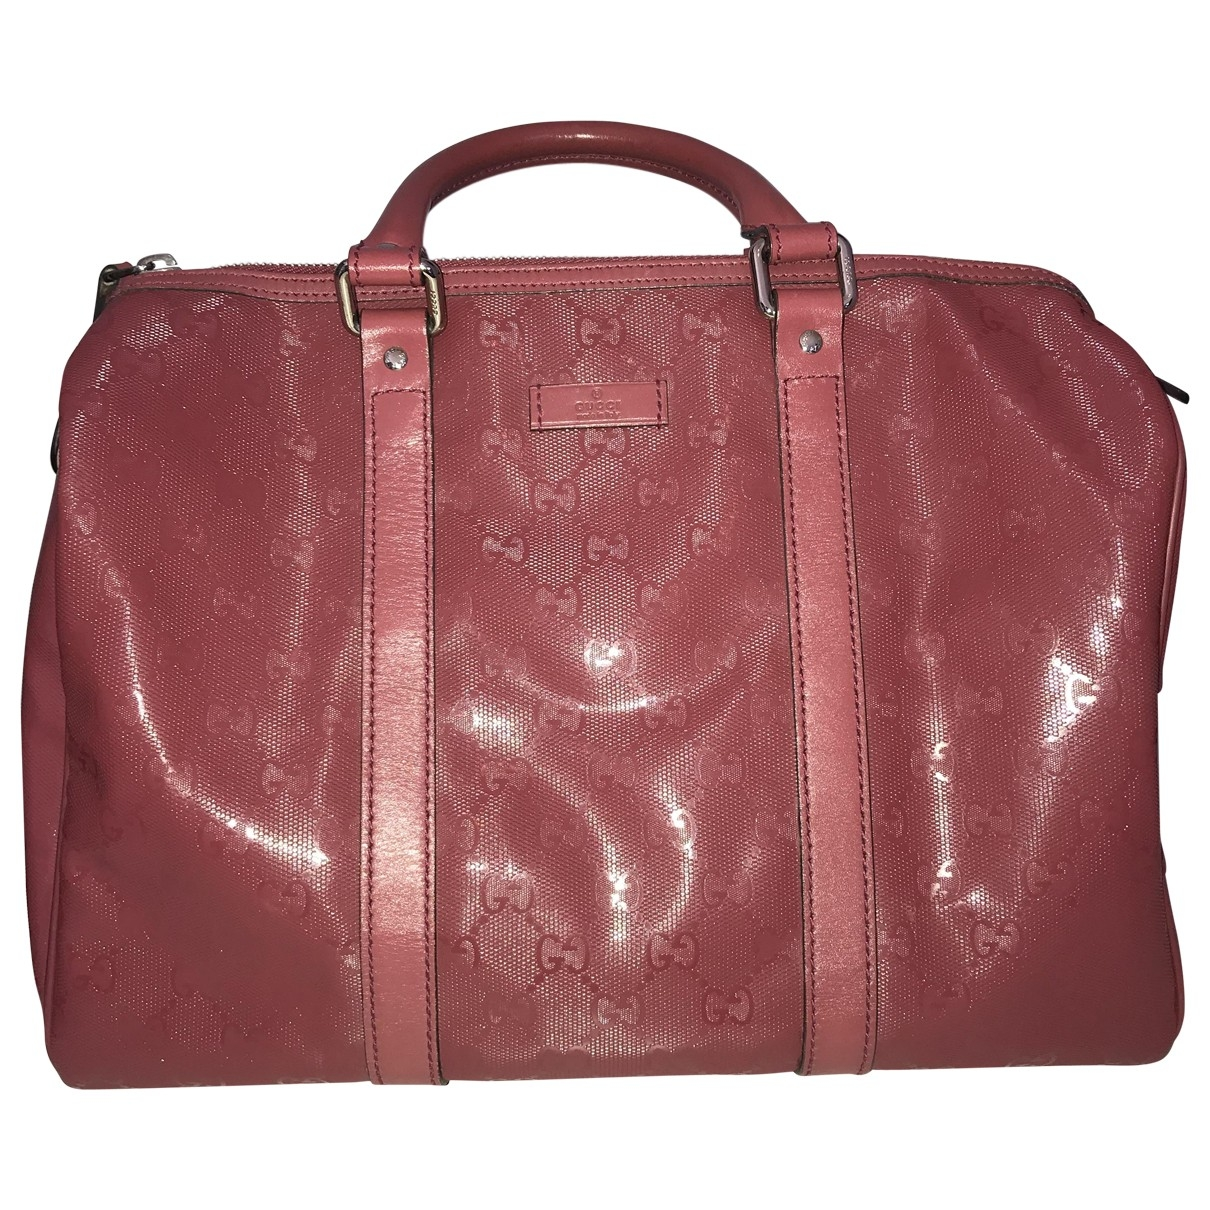 Gucci Boston Handtasche in  Rosa Leder